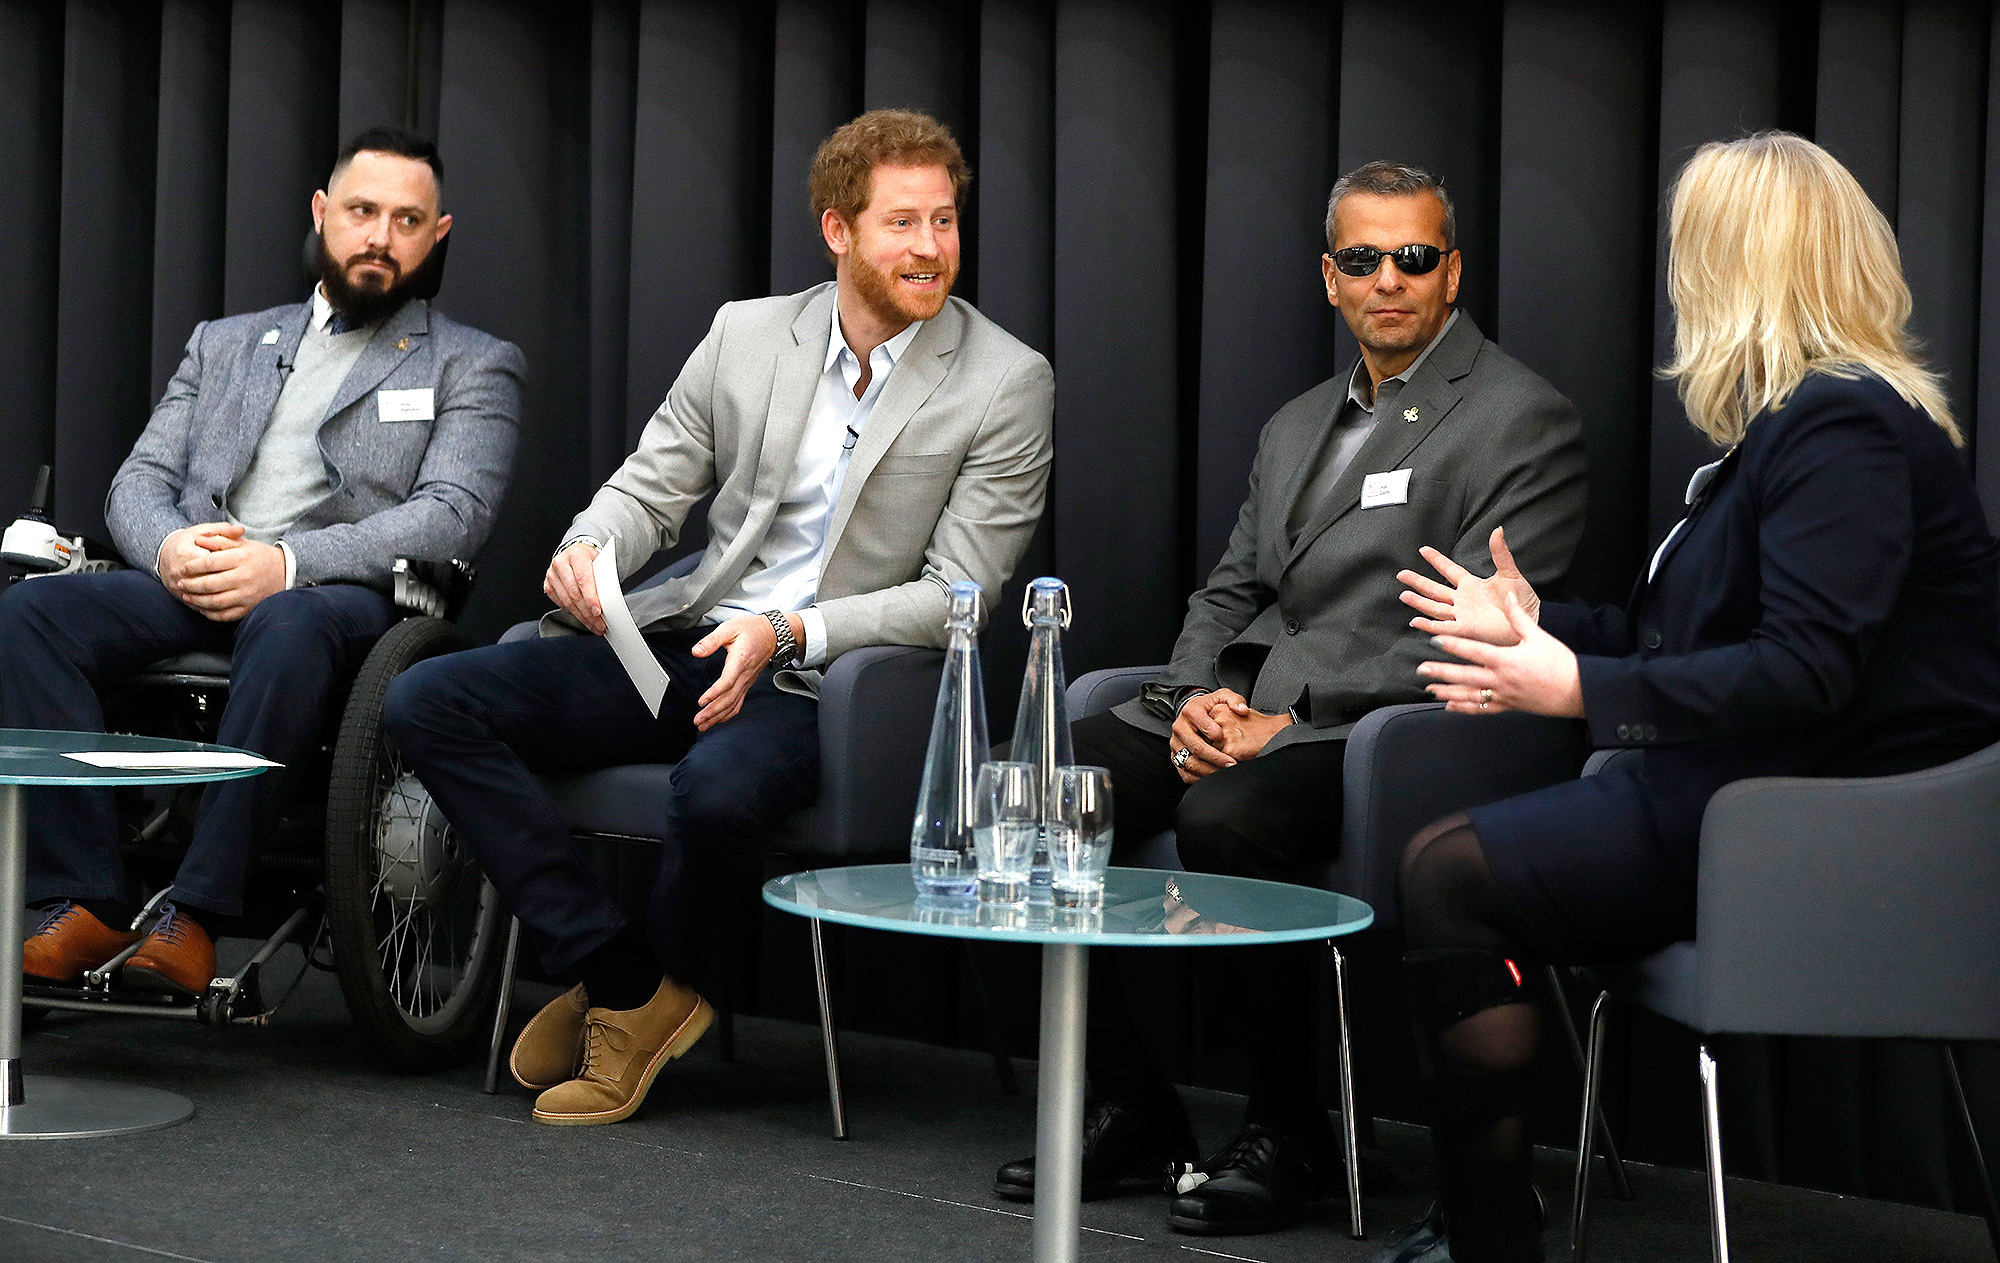 Prince Harry Attends Veterans' Mental Health Conference With Heads Together